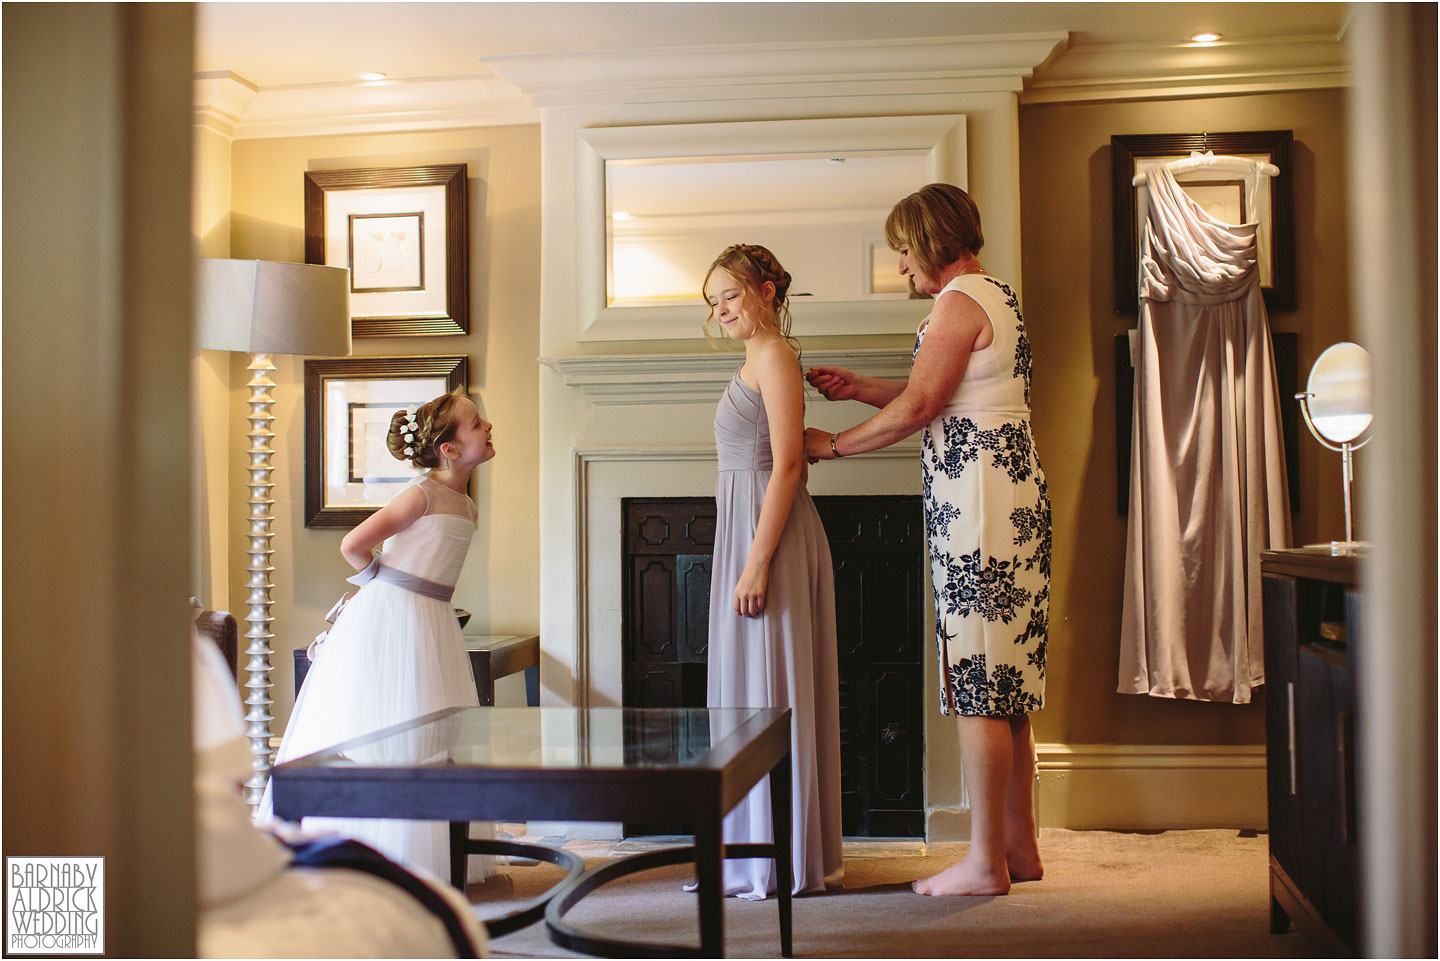 Wood Hall Hotel Wetherby yorkshire bridal preparation images, Wood Hall Wedding Photos, Wood Hall Wedding Photographer